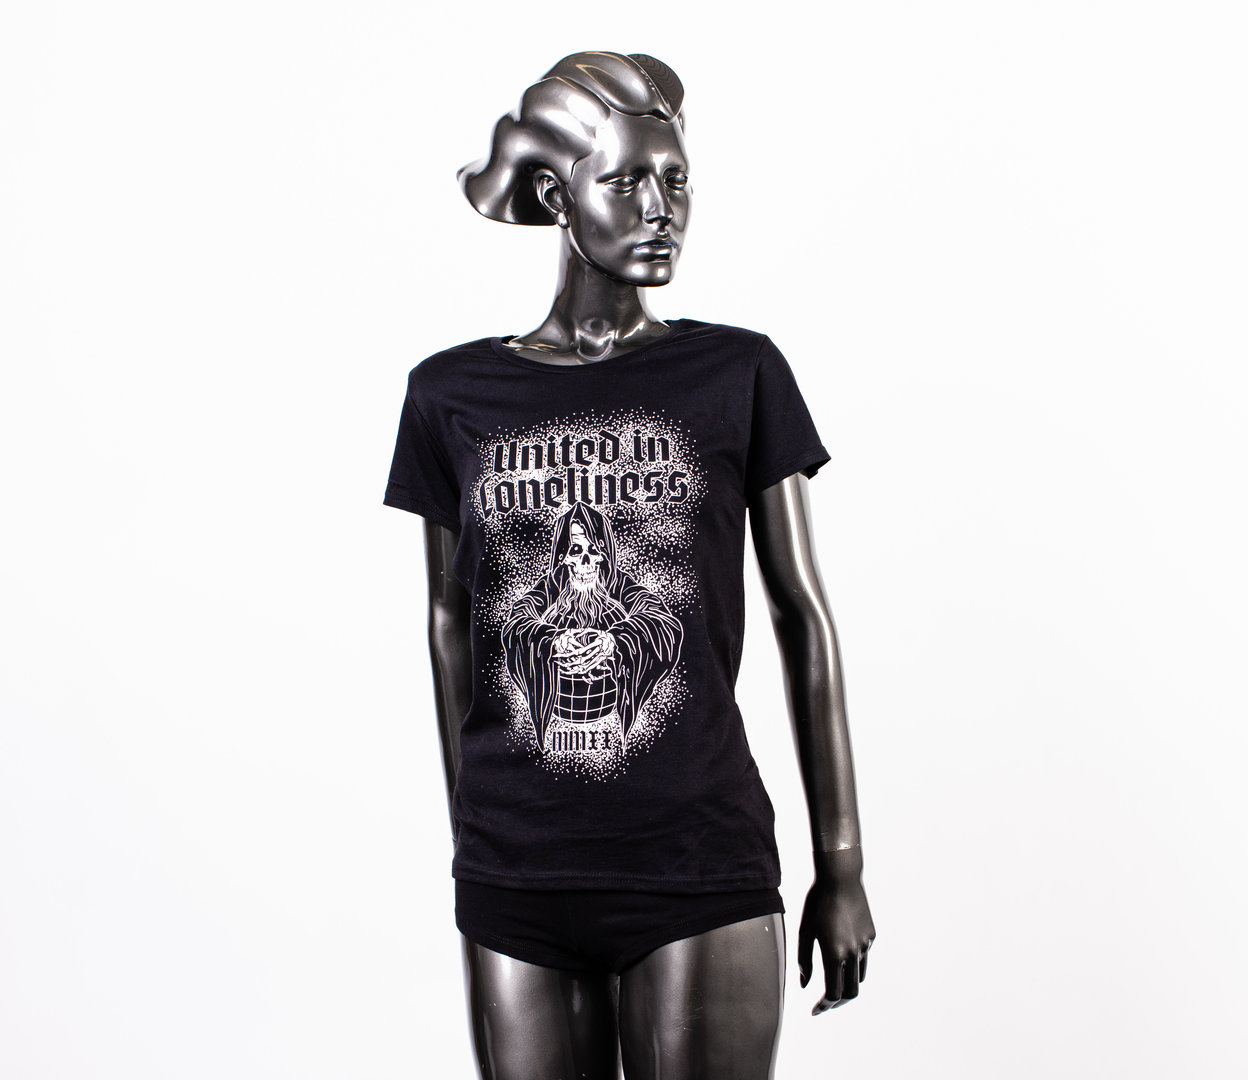 United in Loneliness: Lady Fit Shirt